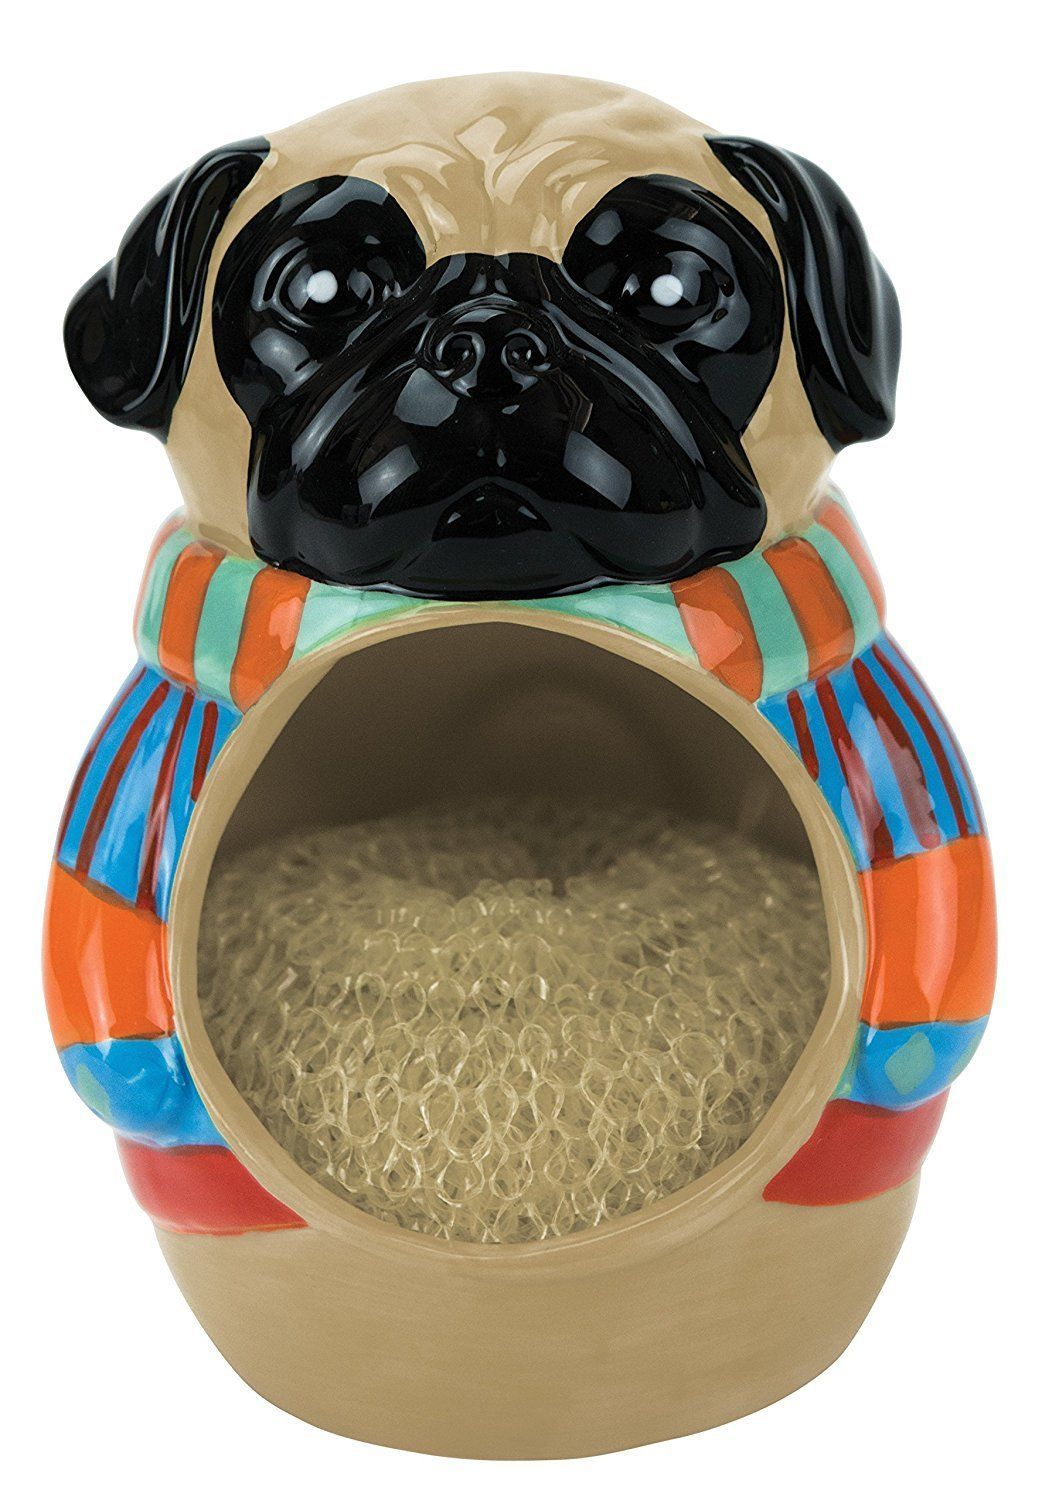 Pugly Dog Sweater Scrubby/Sponge Holder